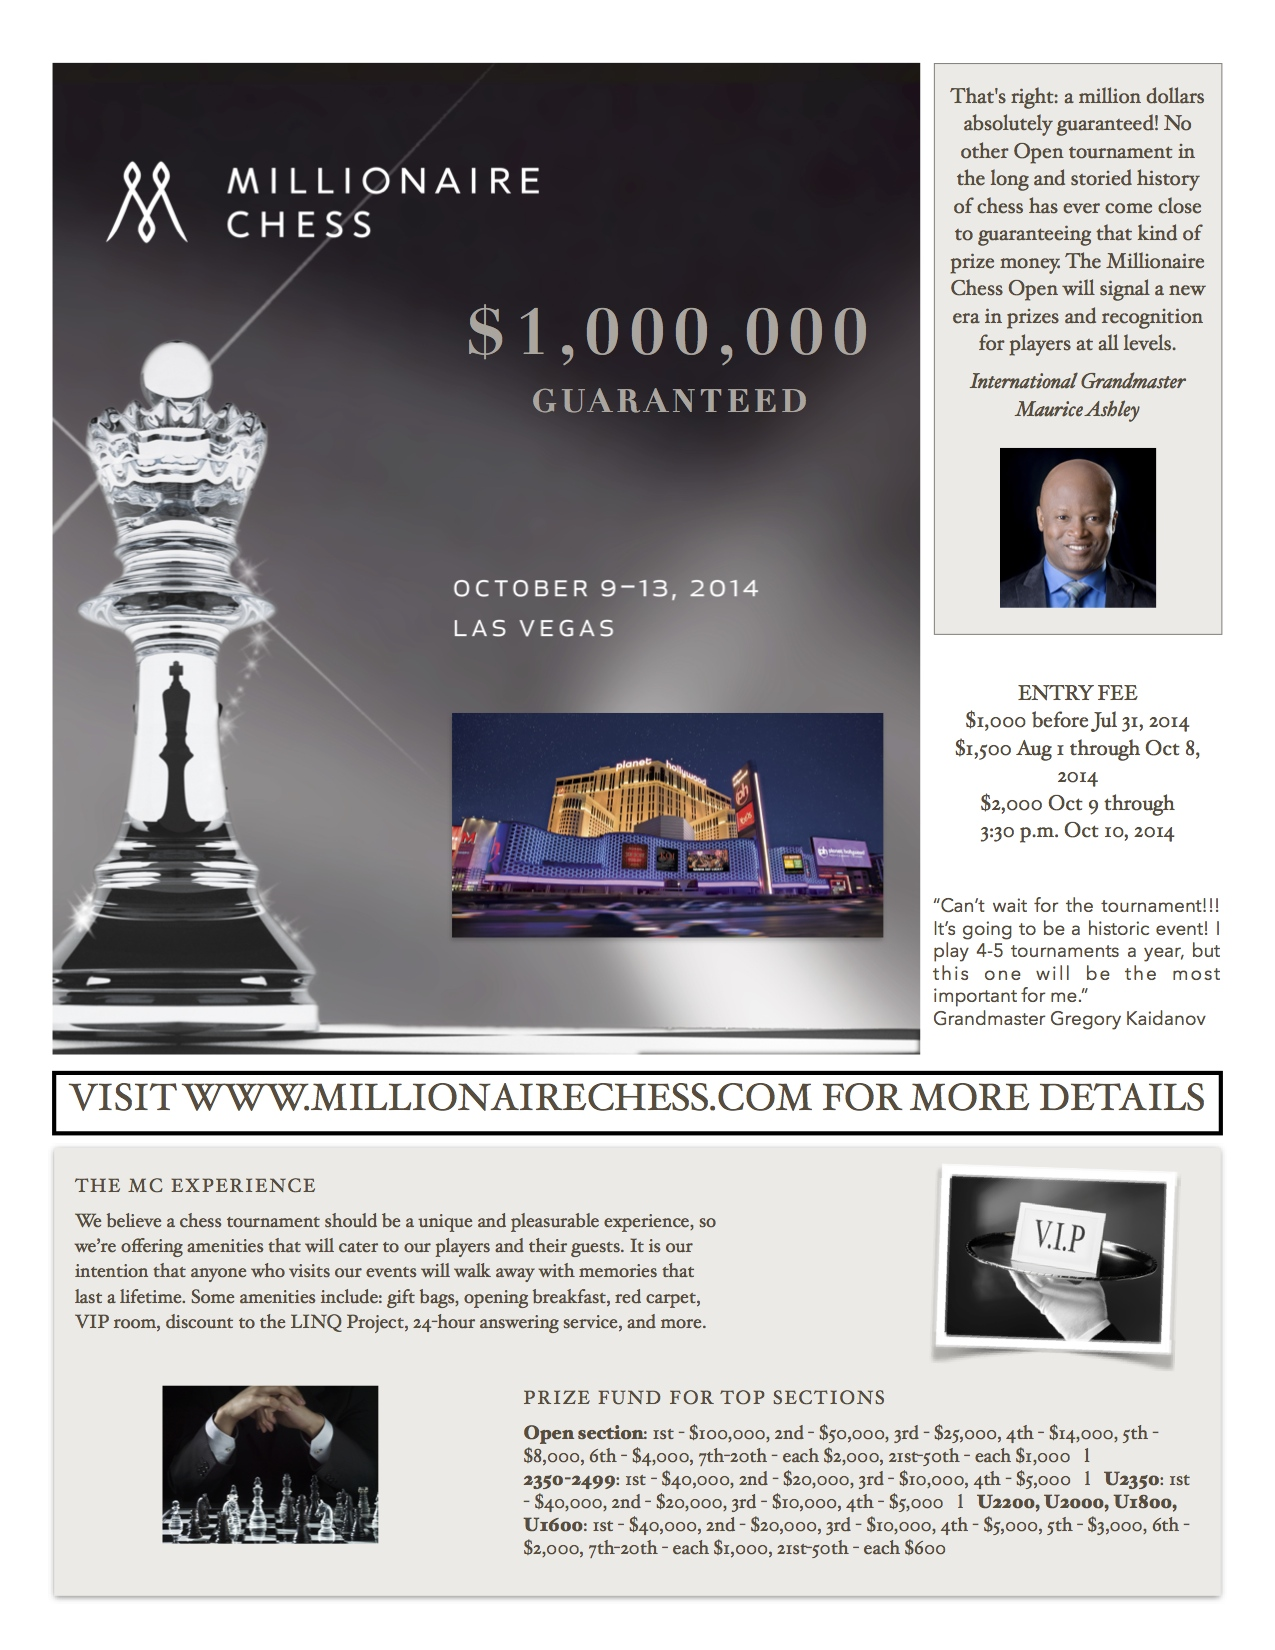 Check CHESS LIFE or the website listed on the post for more details.